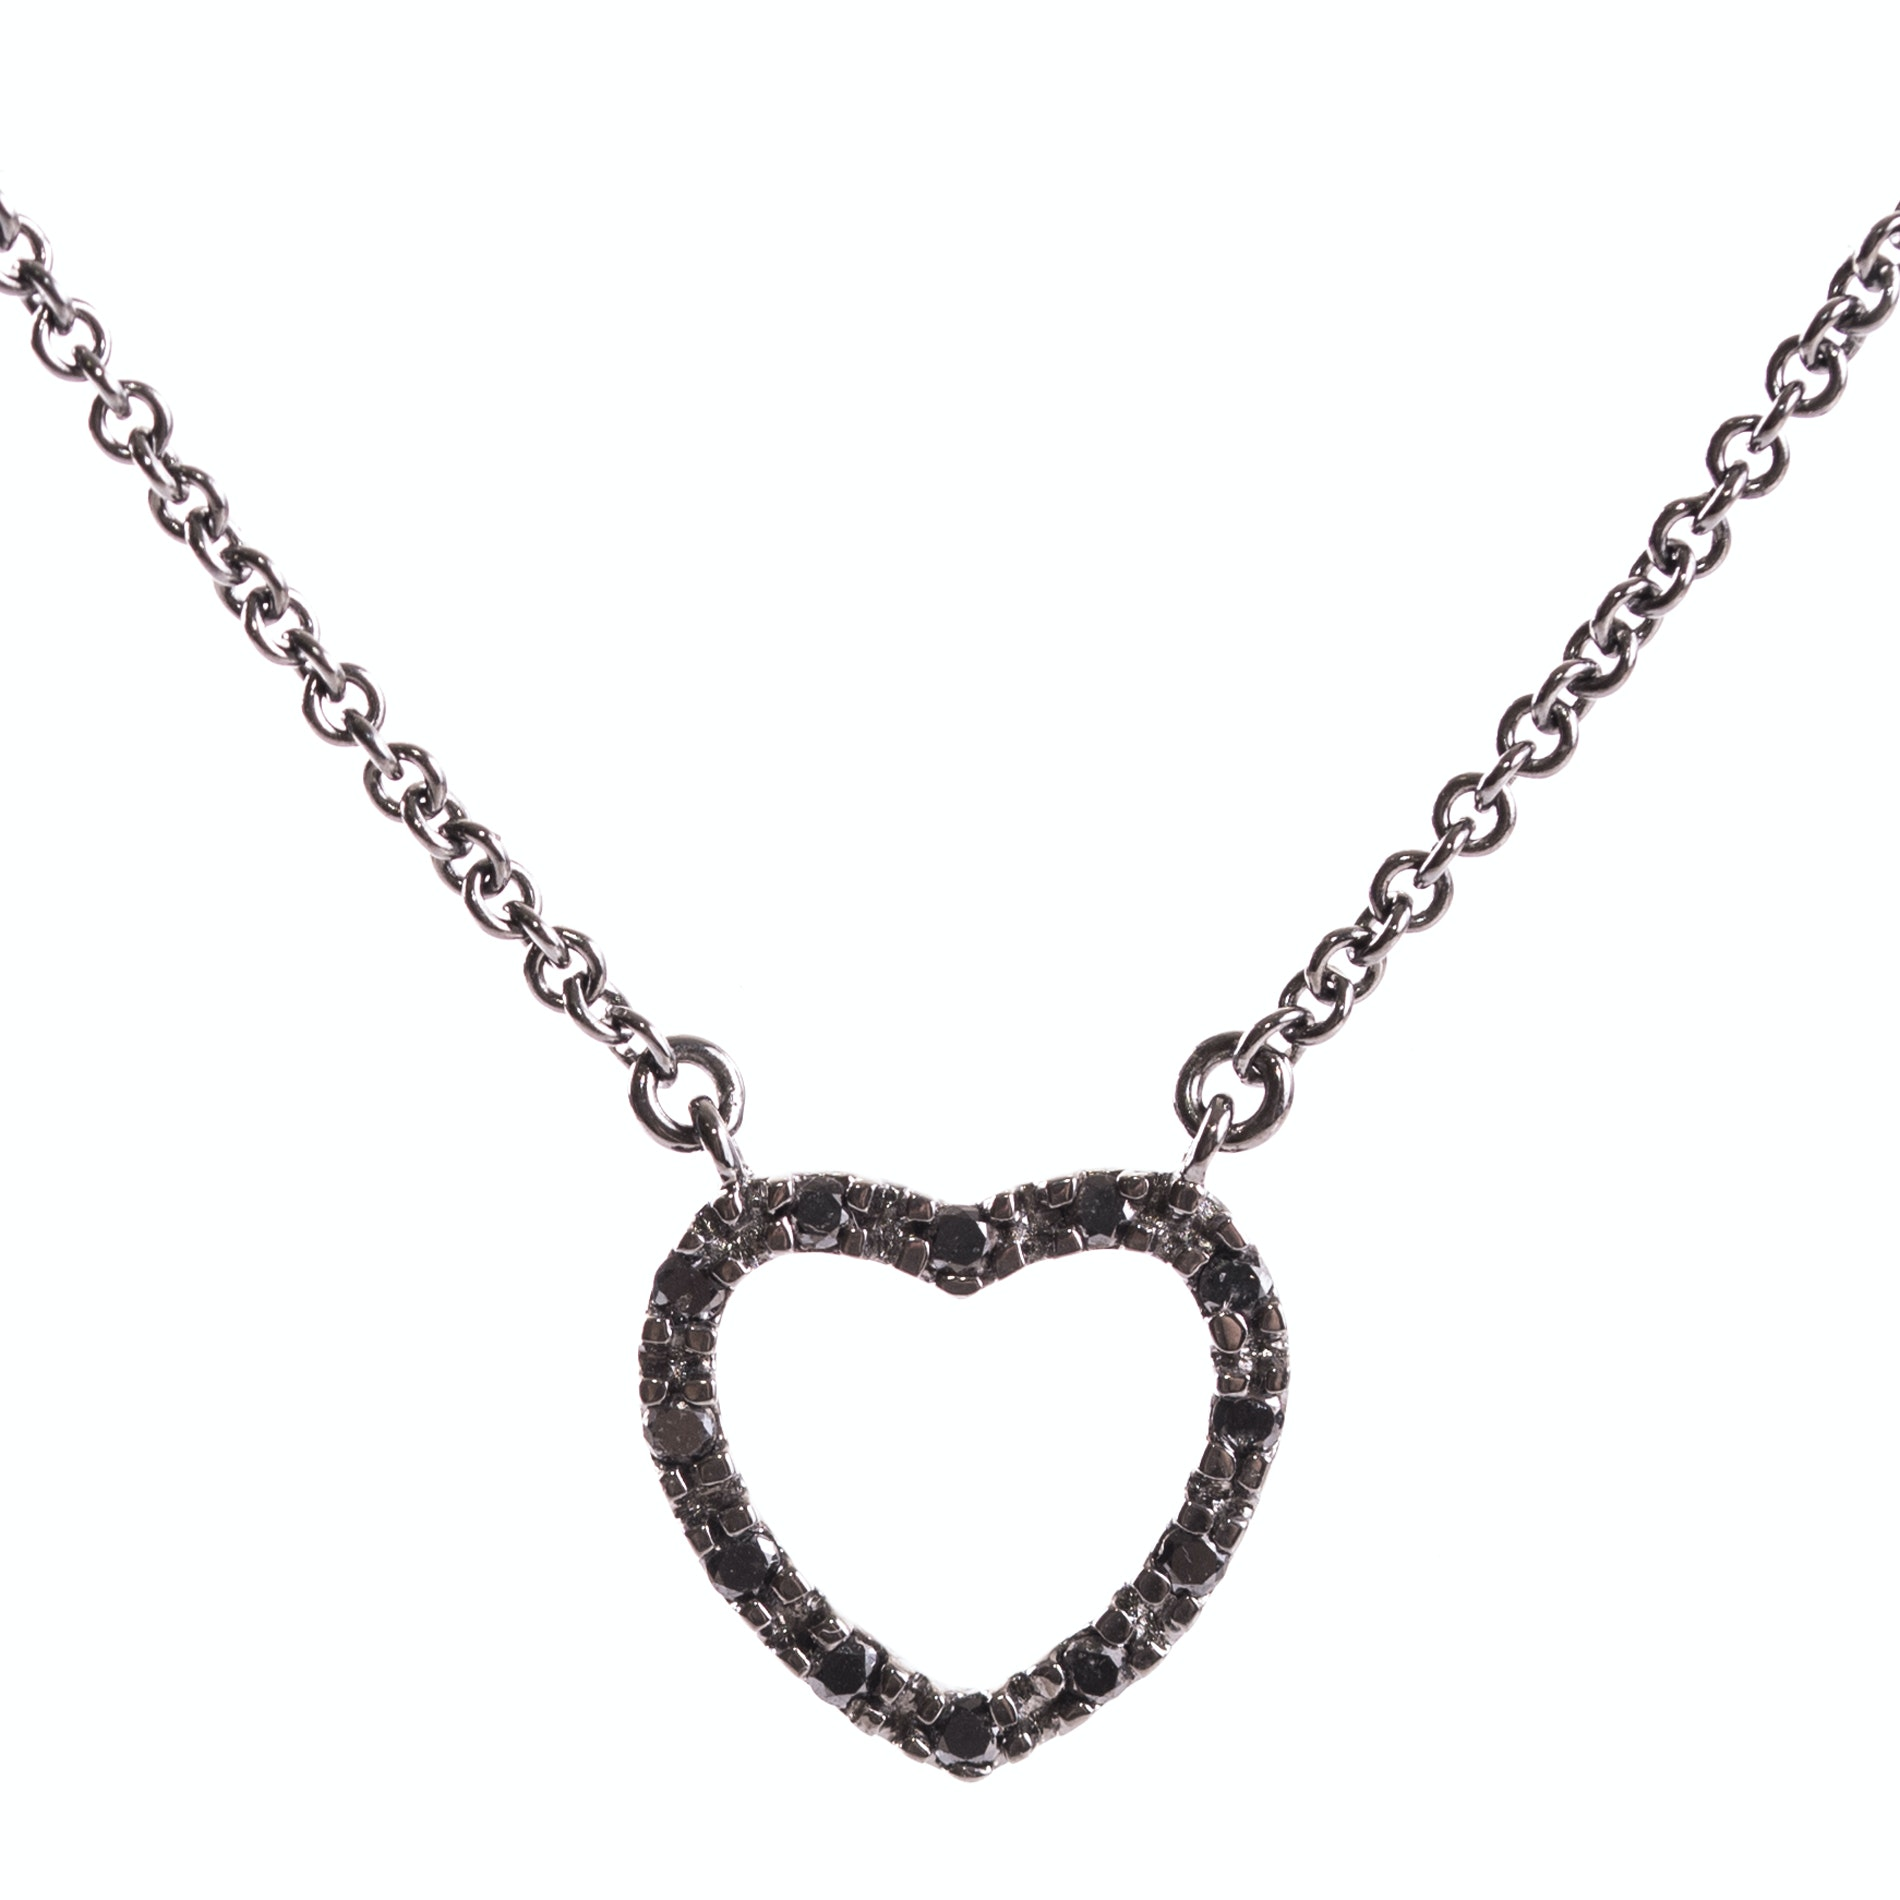 Oxidized Sterling Silver and Diamond Pendant Necklace